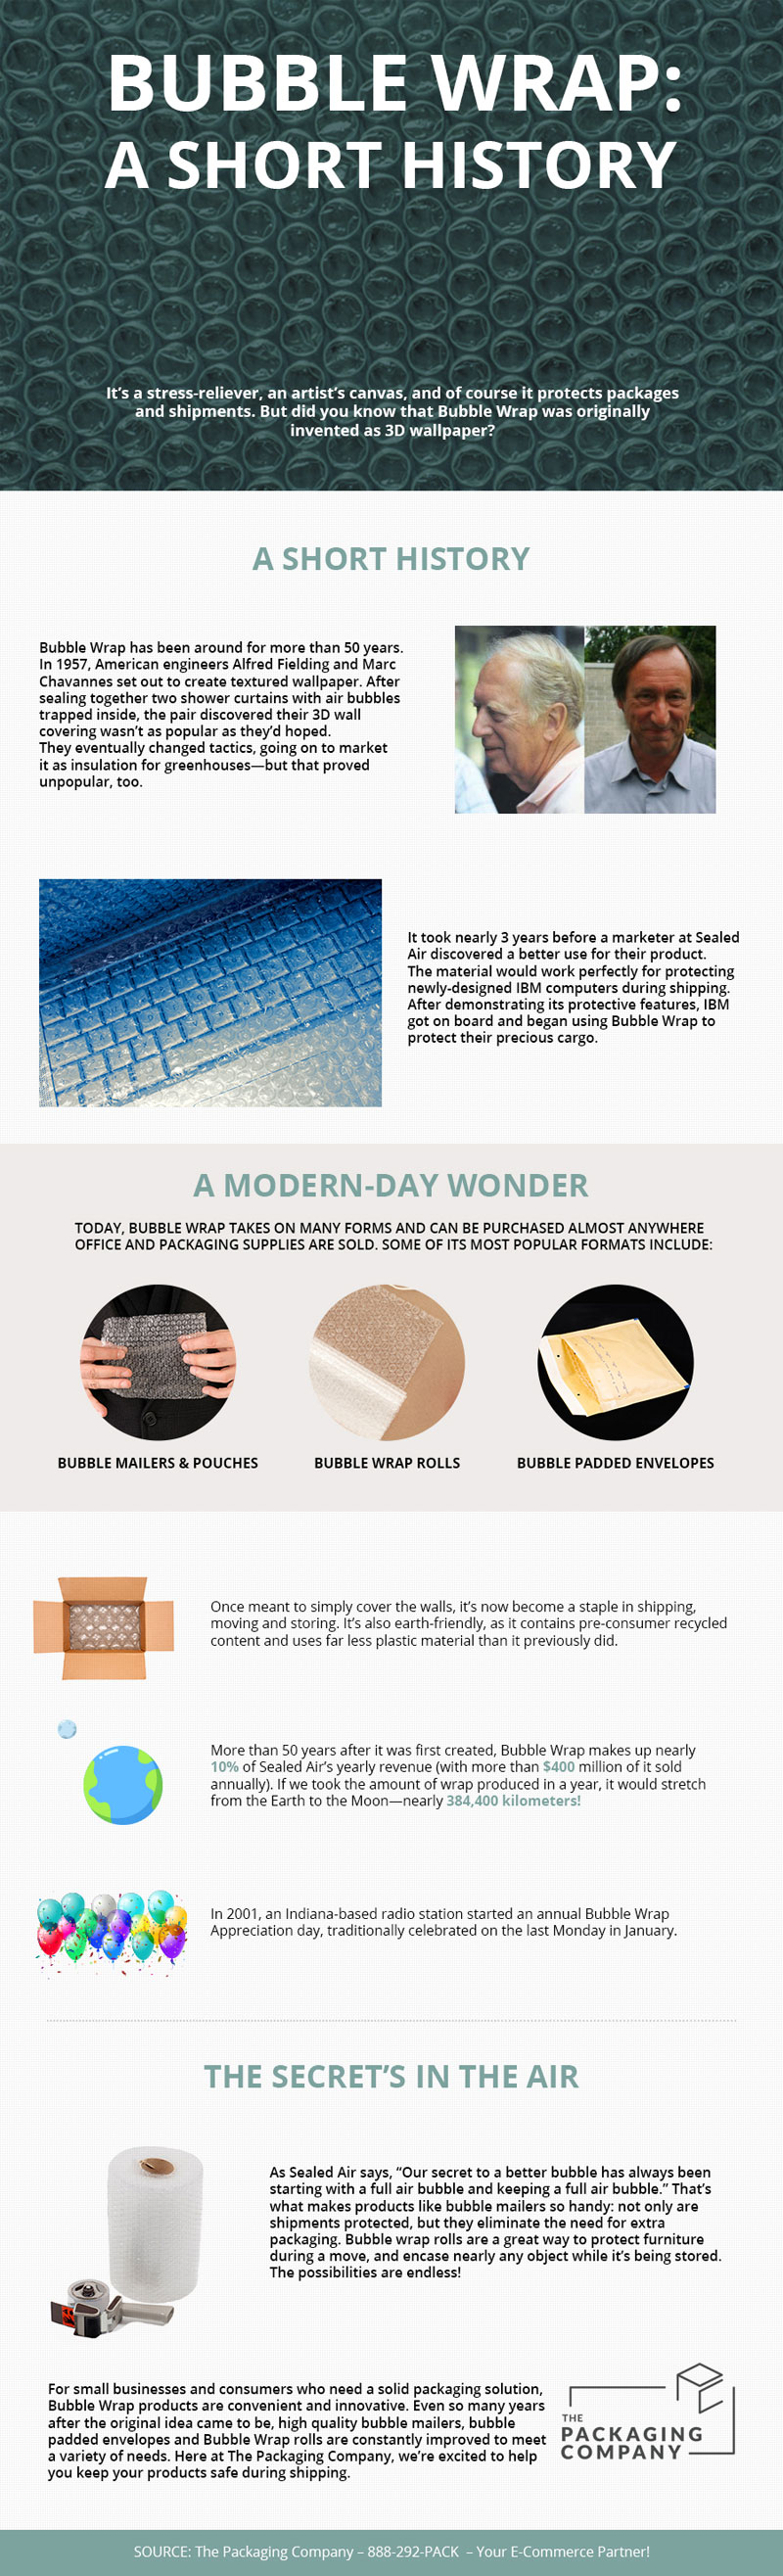 Bubble Wrap: A Short History